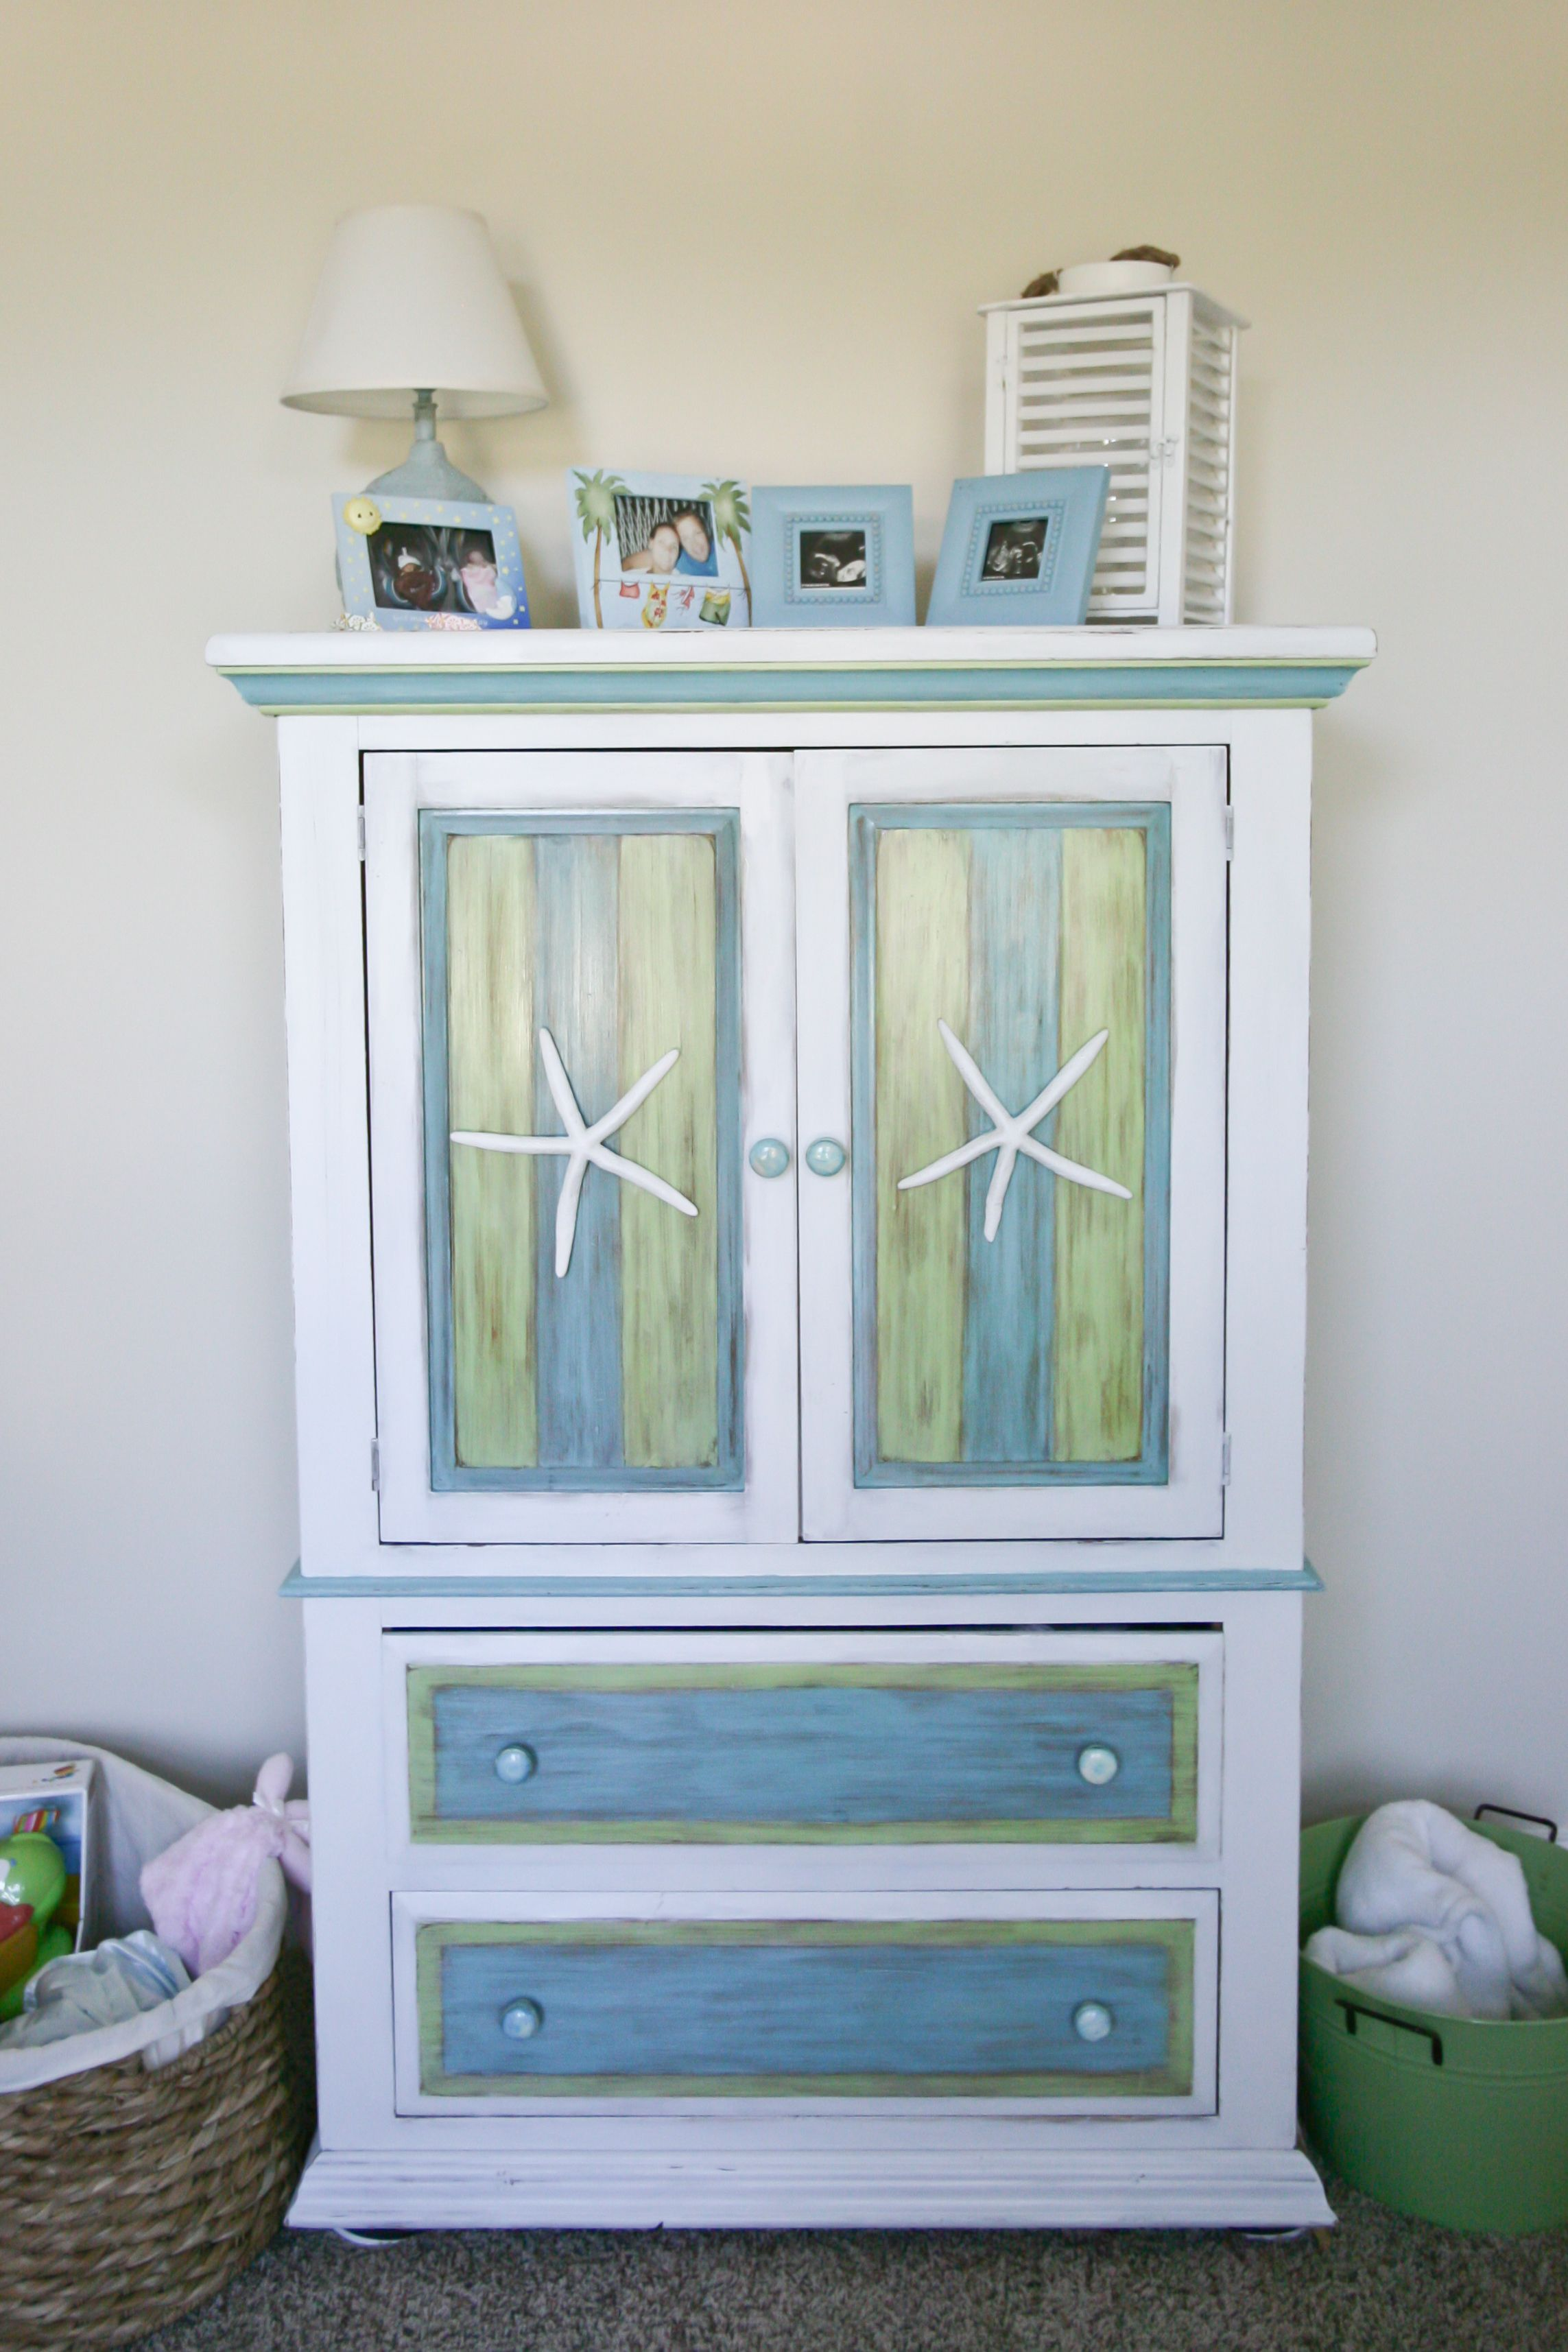 Pin By Patricia Chellew On Beach Projects Beach Furniture Beach Cottage Decor Beach House Decor